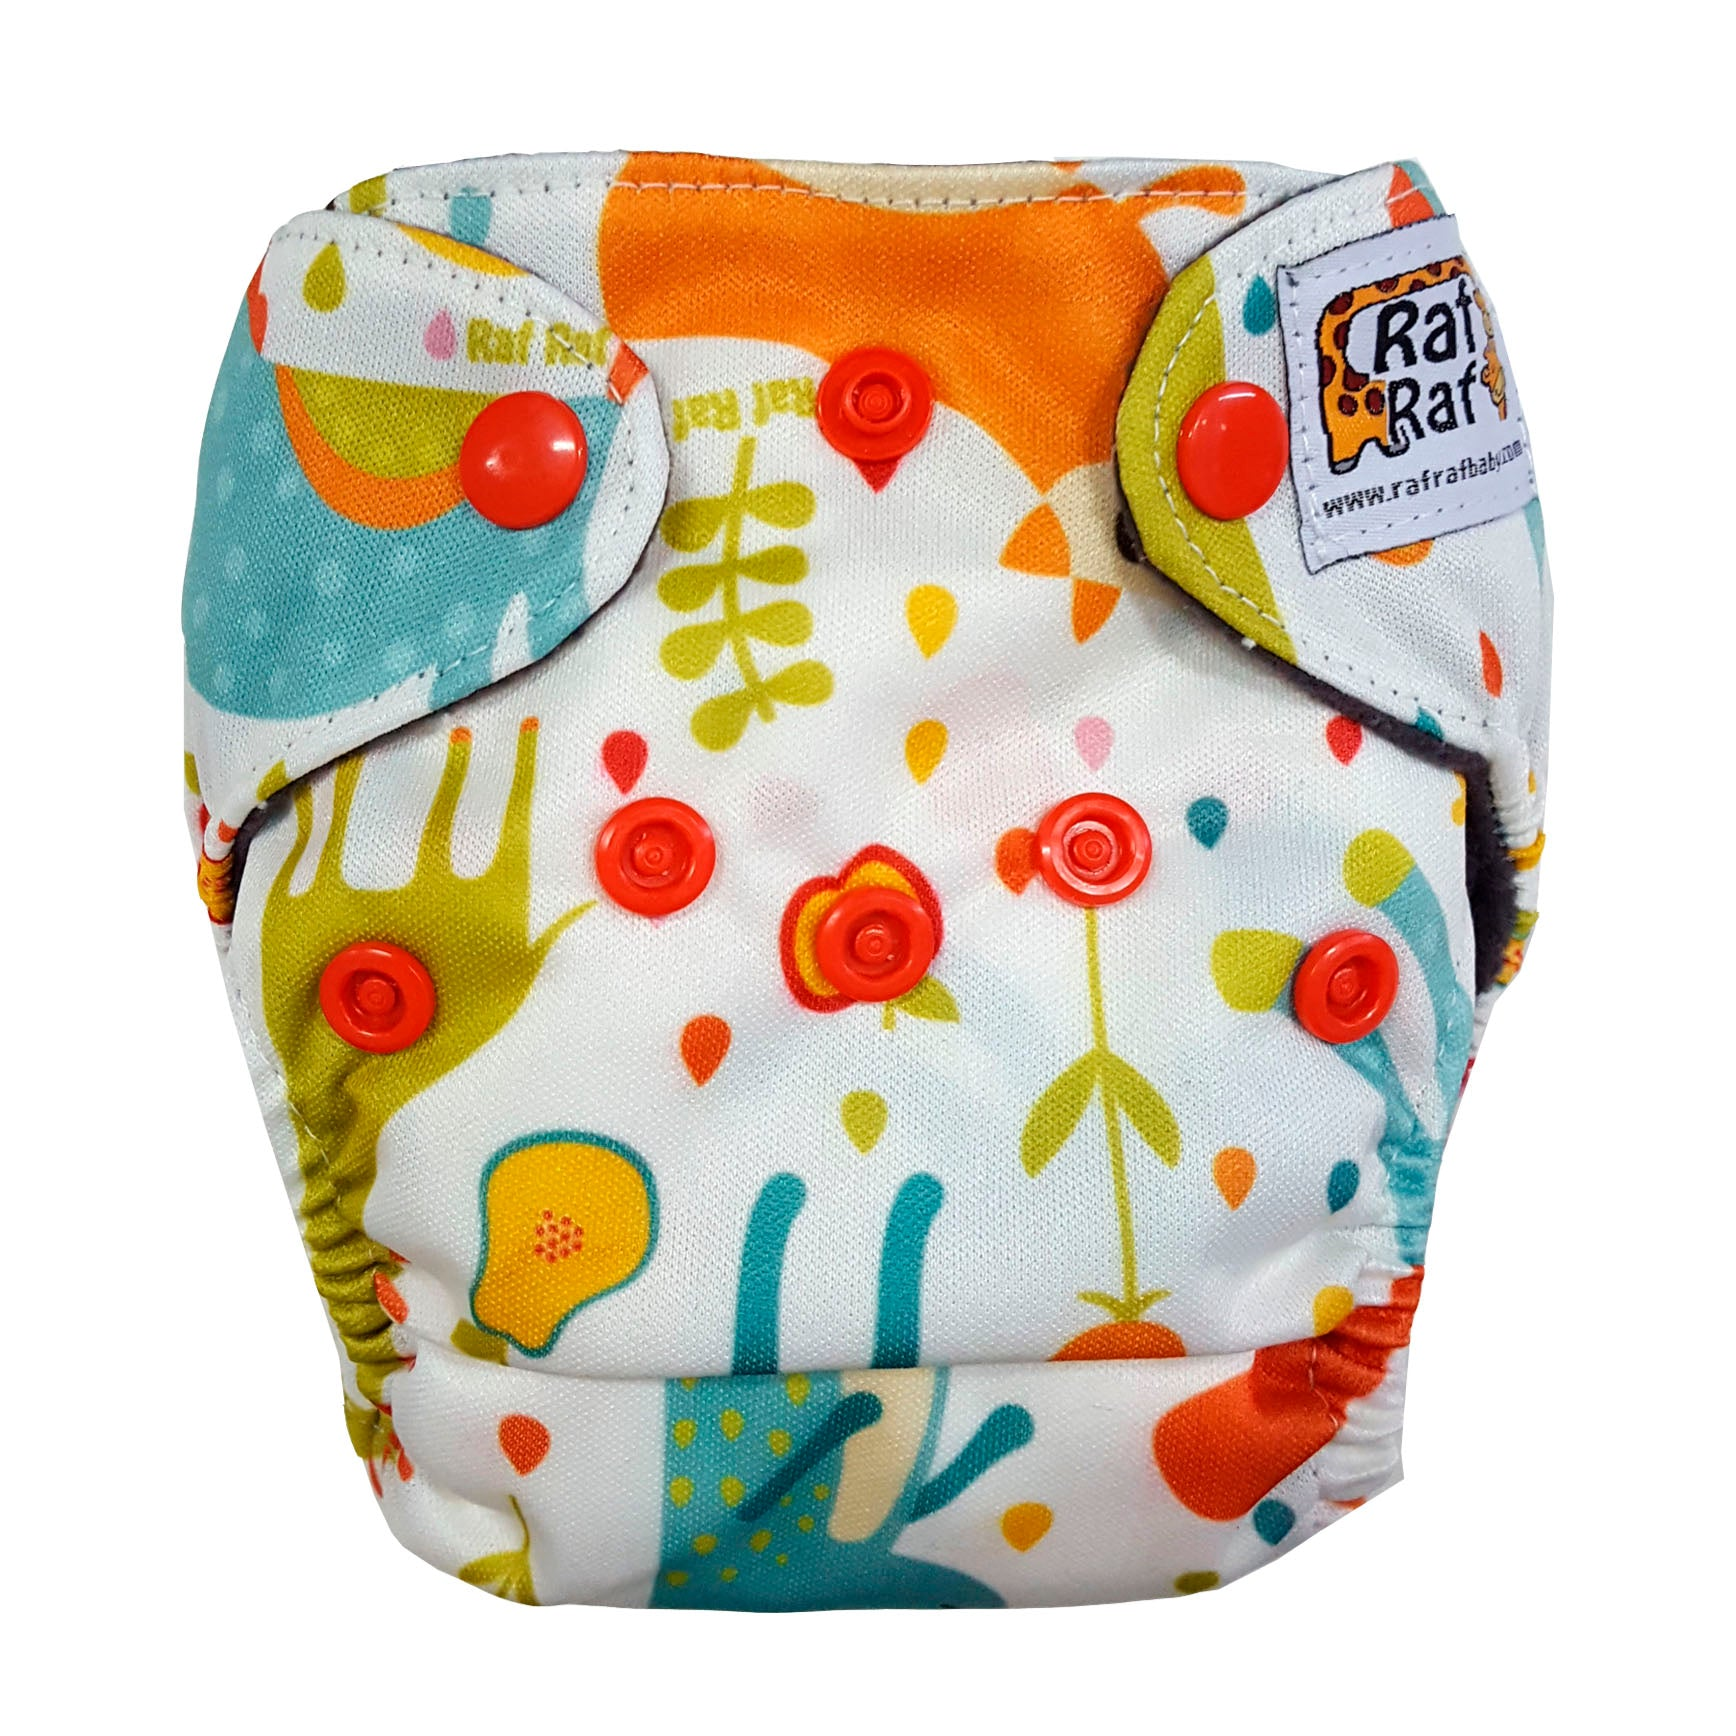 Newborn Charcoal Bamboo Cloth Diaper